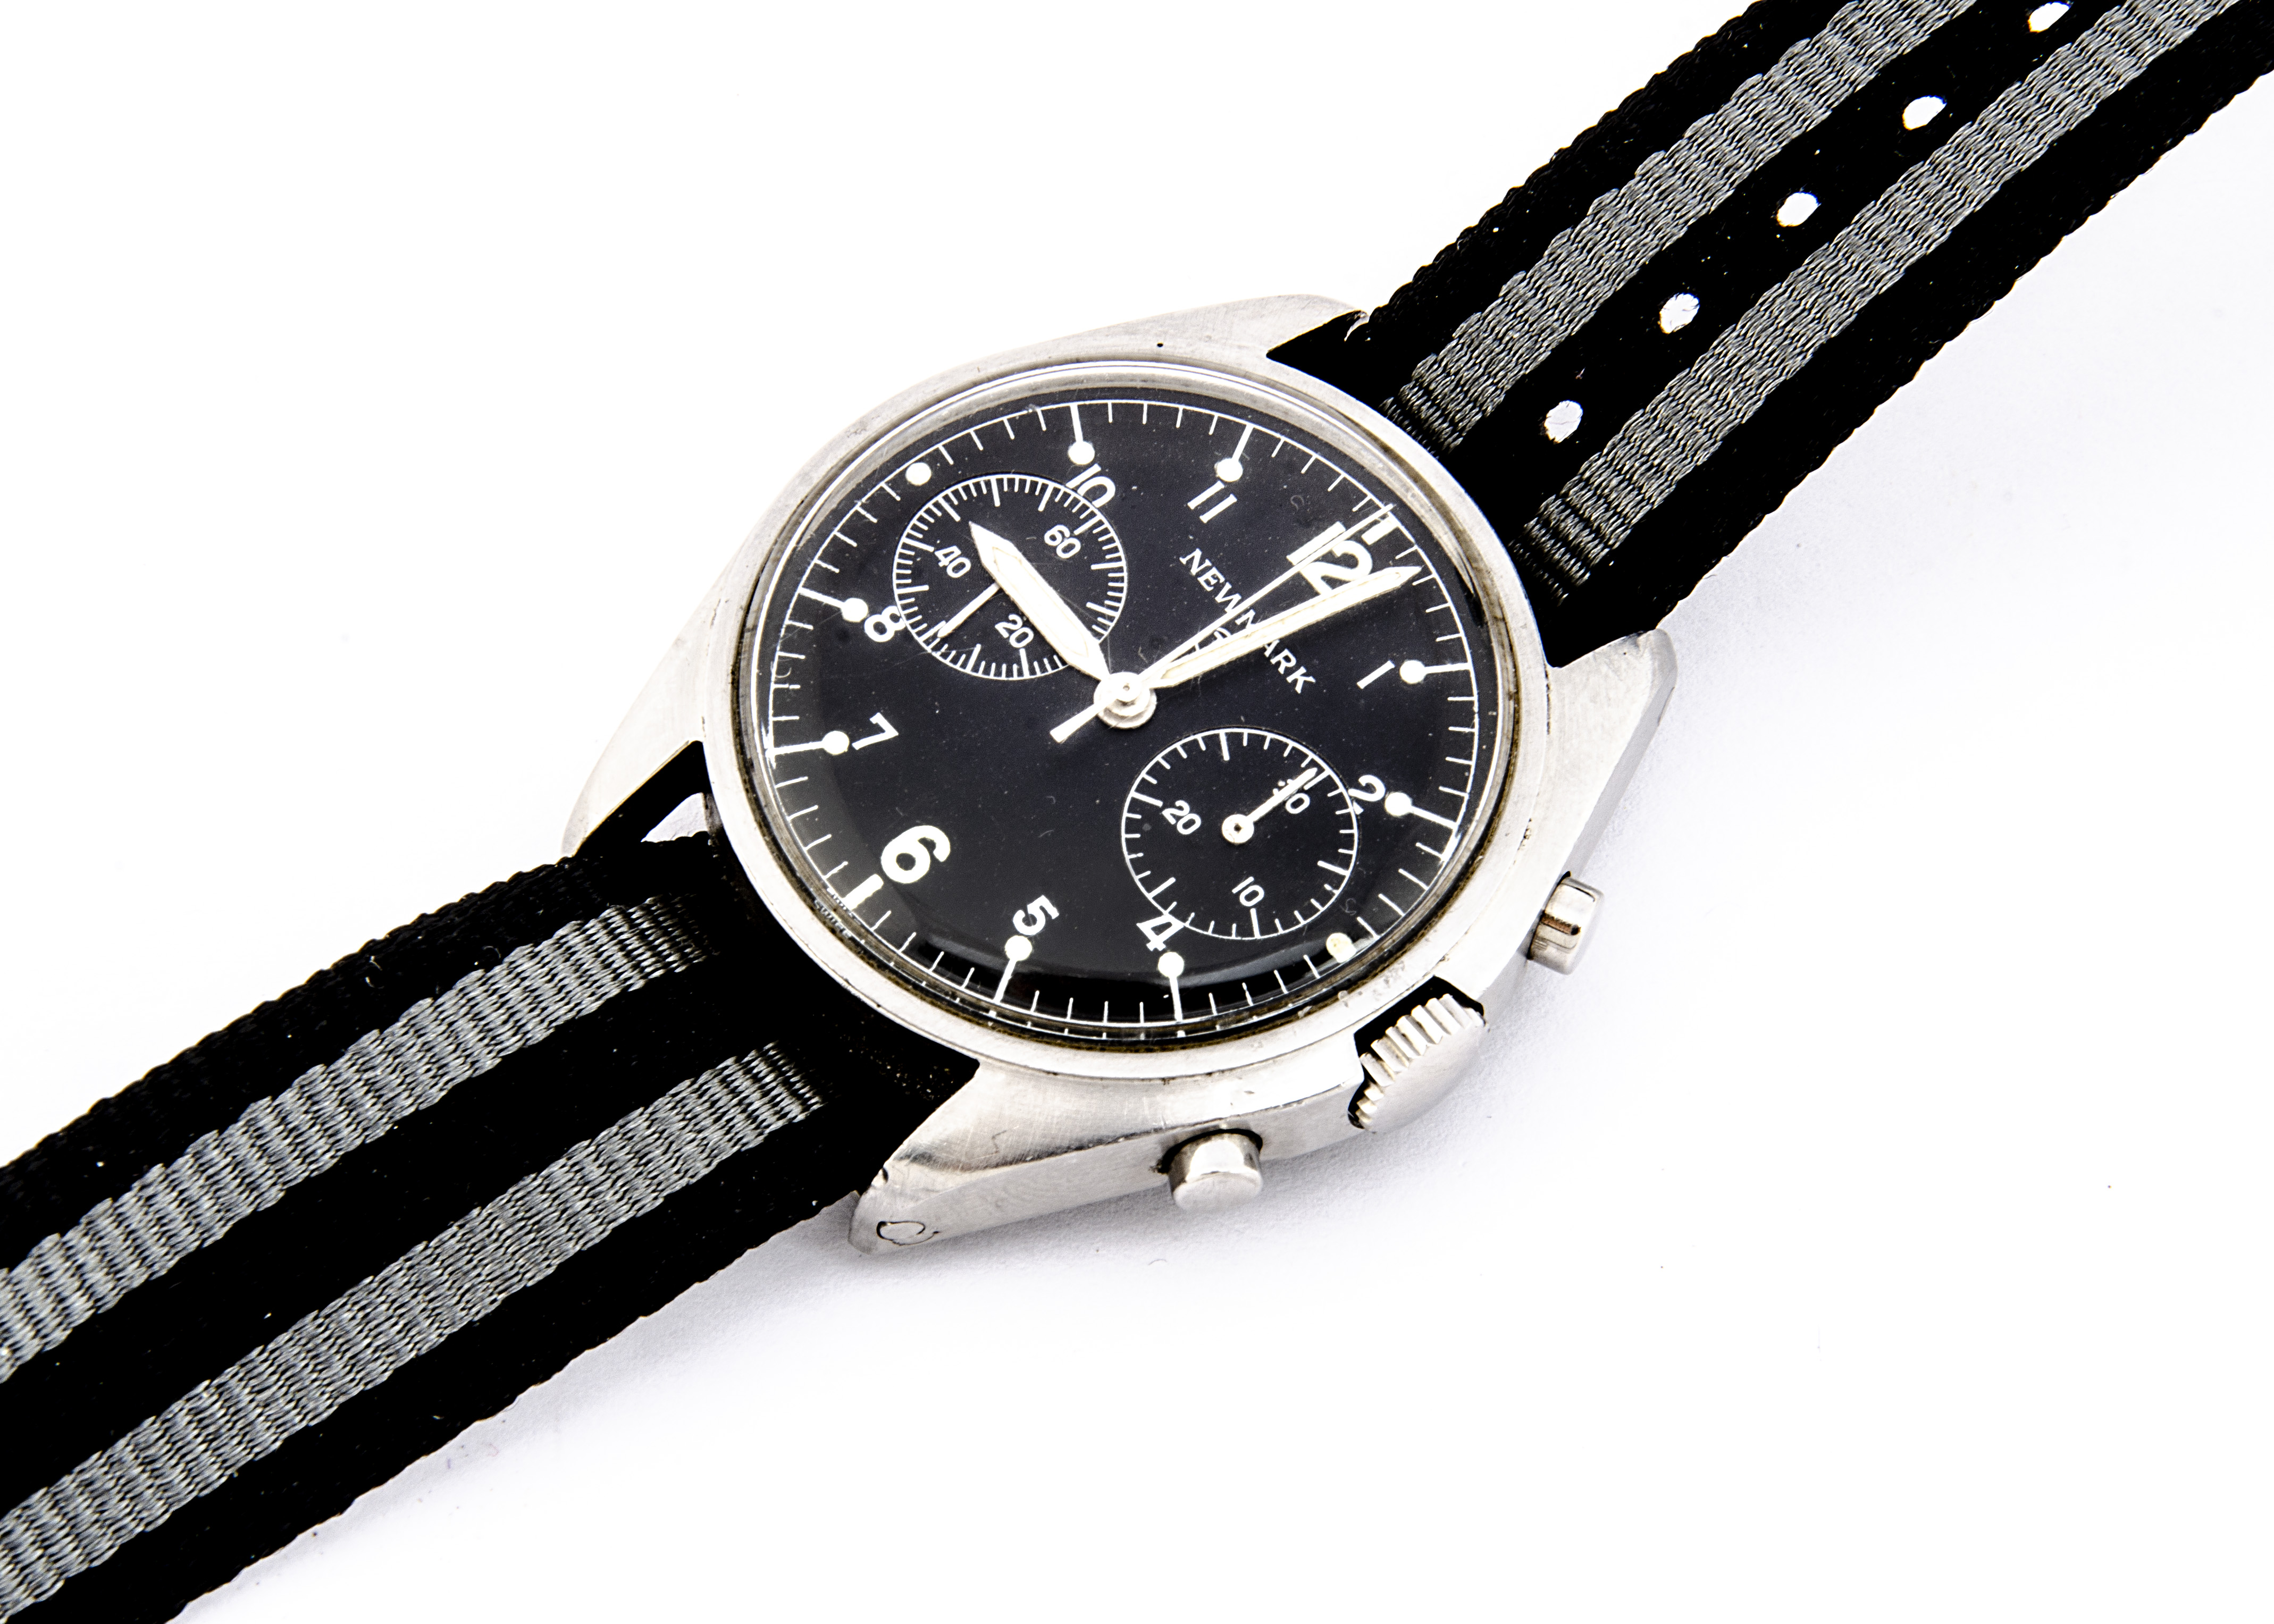 A c1980 Newmark two button chronograph Royal Air Force stainless steel wristwatch, 38mm case,